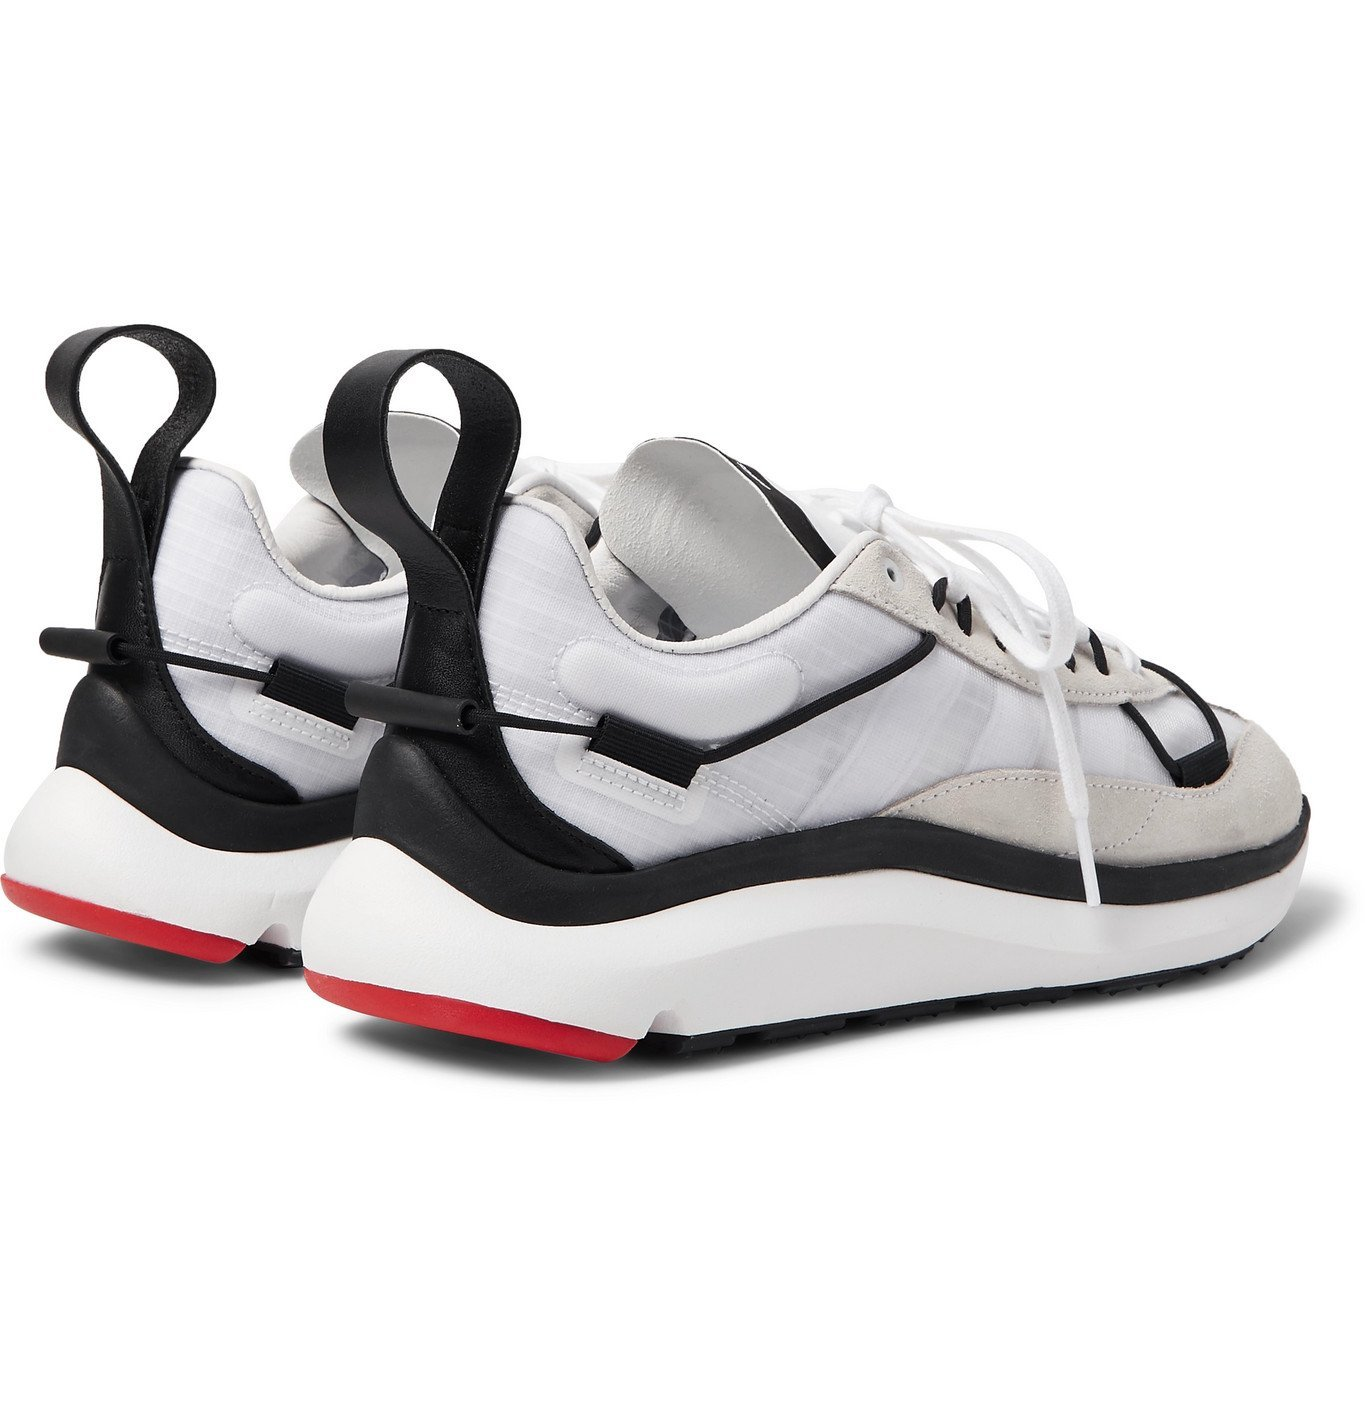 Y-3 - Shiku Run Leather and Suede-Trimmed Mesh Sneakers - White